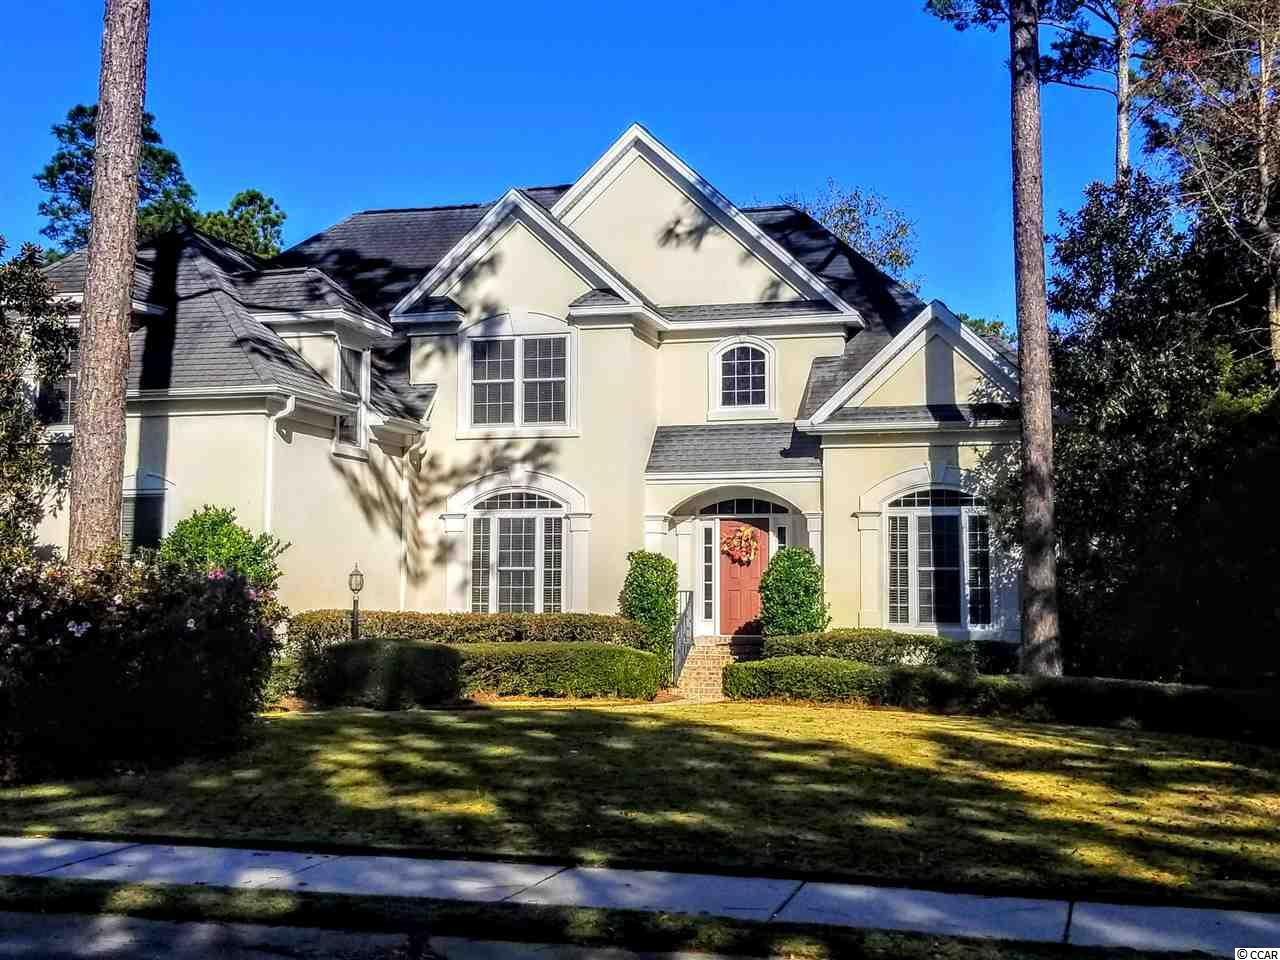 Amazing golf course view is what you can wake up to every day from this 4+ bedroom custom built home on the 5th tee of TPC golf course, a Fazio designed championship course, Golf Digest's only 5-star golf course on the Grand Strand. Highwood is a gated, custom home neighborhood in the Prince Creek section of Murrells Inlet, with lots of mature trees and ponds.  This 4+ bedroom home was built by a local custom home builder, Rabon Construction, originally as his own home. The well-thought out layout is unique. Both the master bedroom and a spare bedroom are on the first floor, separated by the main living area, large eat-in kitchen, formal dining room and sitting room\office area. The second floor includes two additional bedrooms, a guest bath, loft/living area with wet bar and lots of built-in cabinets, as well as a finished bonus room over the garage which can be used as an exercise room, man cave, 5th bedroom, etc. Lots of storage upstairs with access to floored attic areas in addition to the side load 2 car garage. HVAC system was replaced in 2014. Home is like new - barely lived in. Come see this exceptional home with an exceptional view for yourself. TPC golf memberships are available but not required. Just a few miles from the famous Murrells Inlet Marshwalk. Lots of shopping and restaurants nearby. Awesome location and awesome home. Square footage is approximate and not guaranteed. Buyer is responsible for verification.